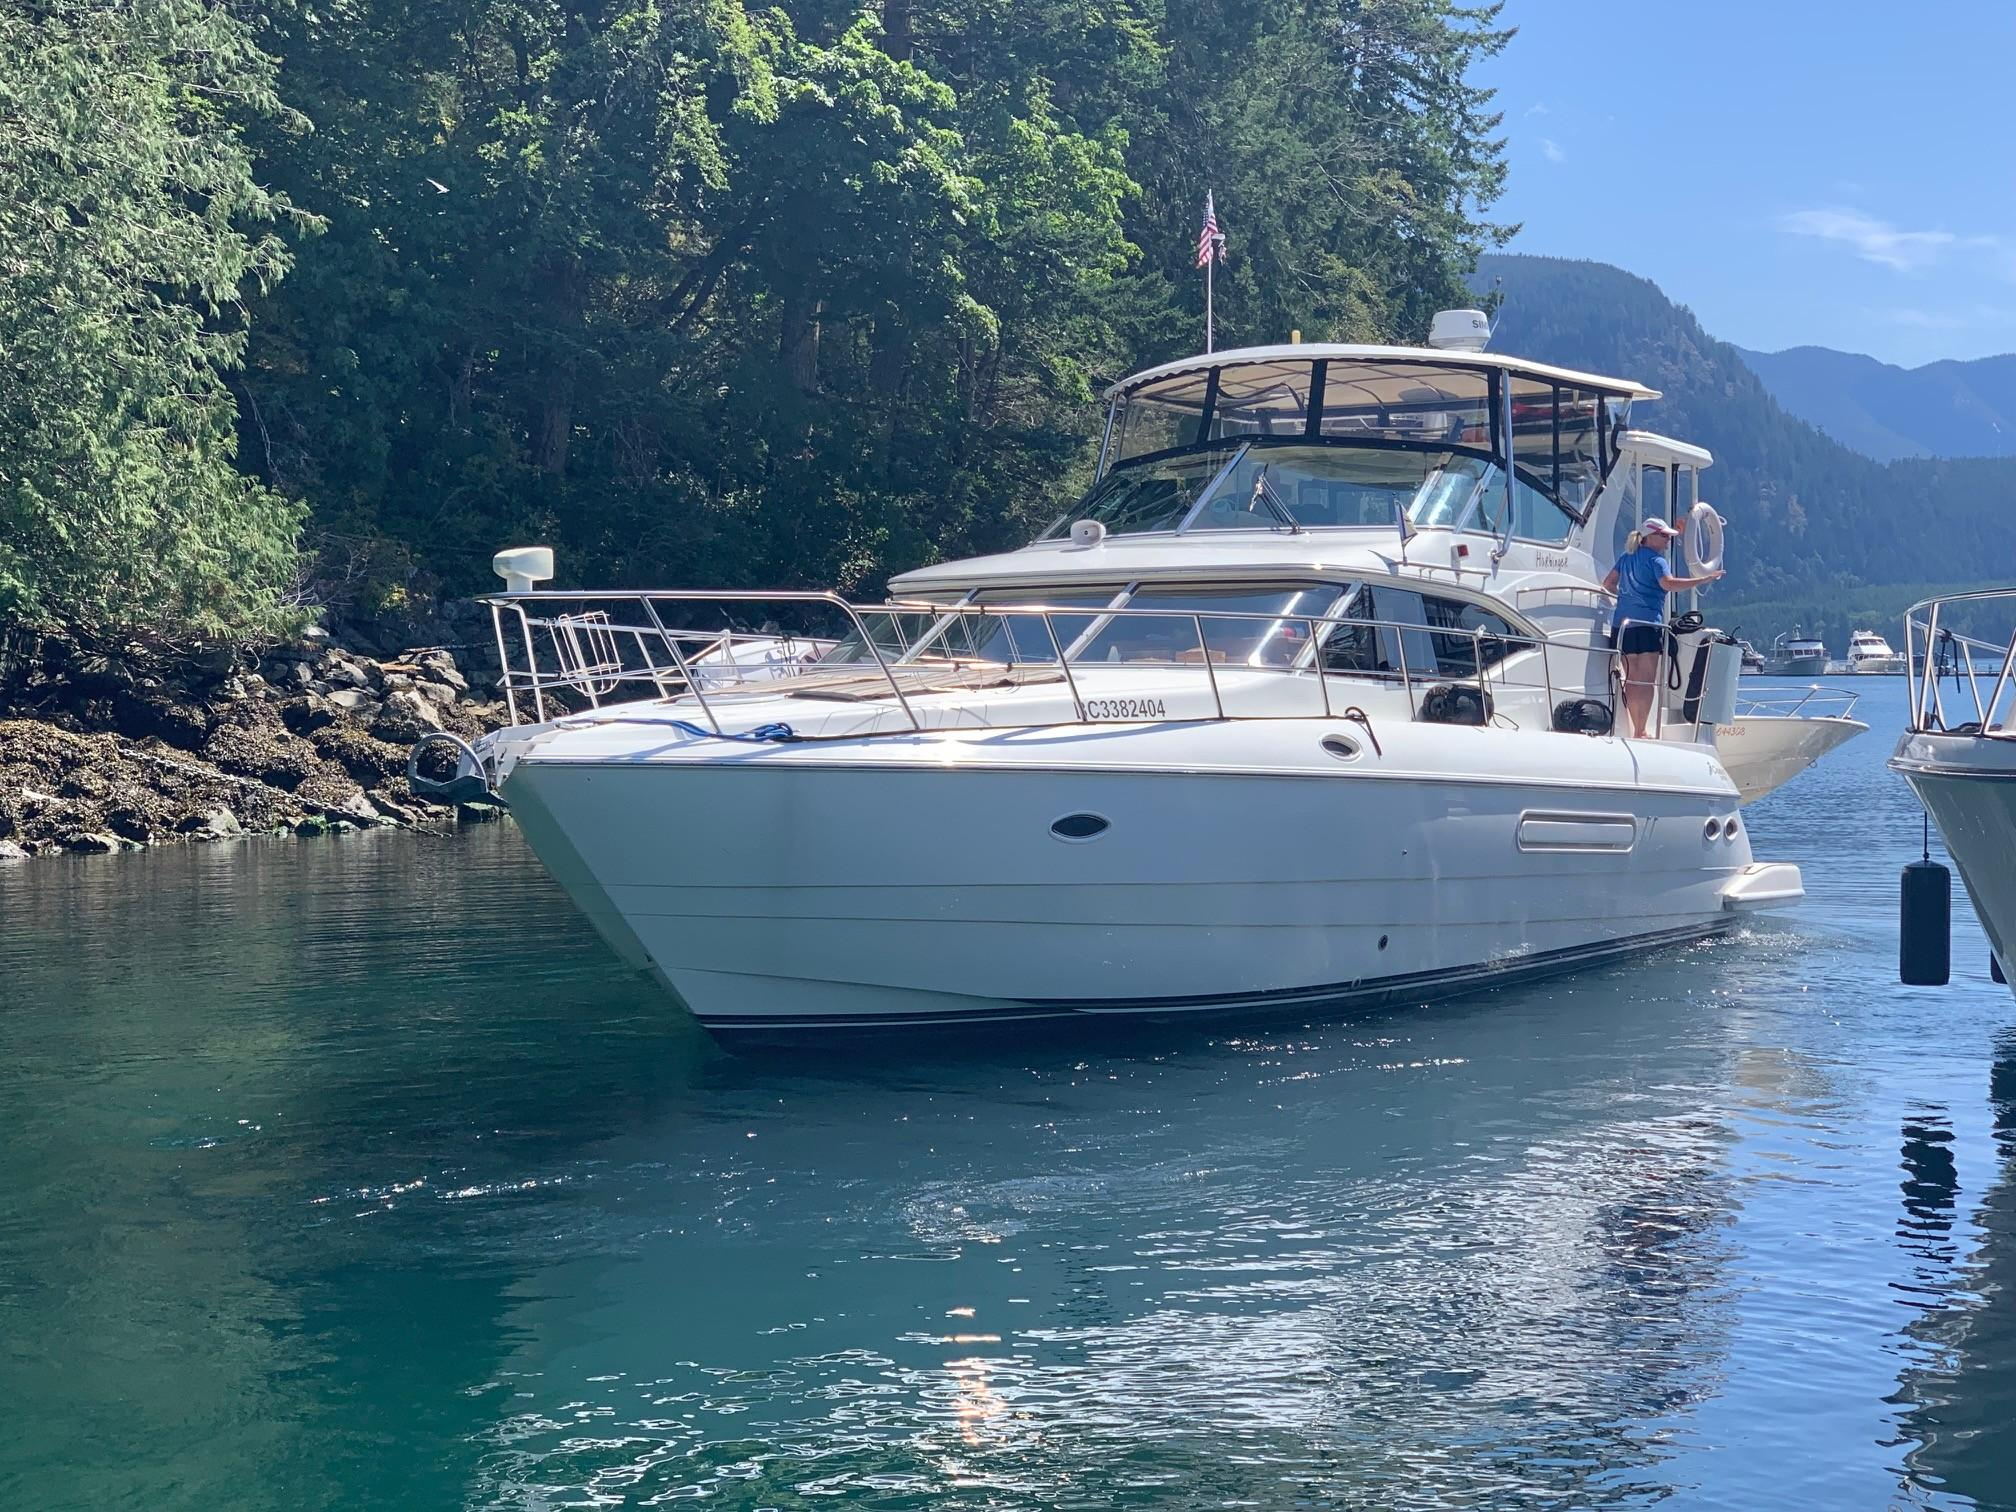 44 Cruisers Yachts 2002 Crescent Beach | Denison Yacht Sales